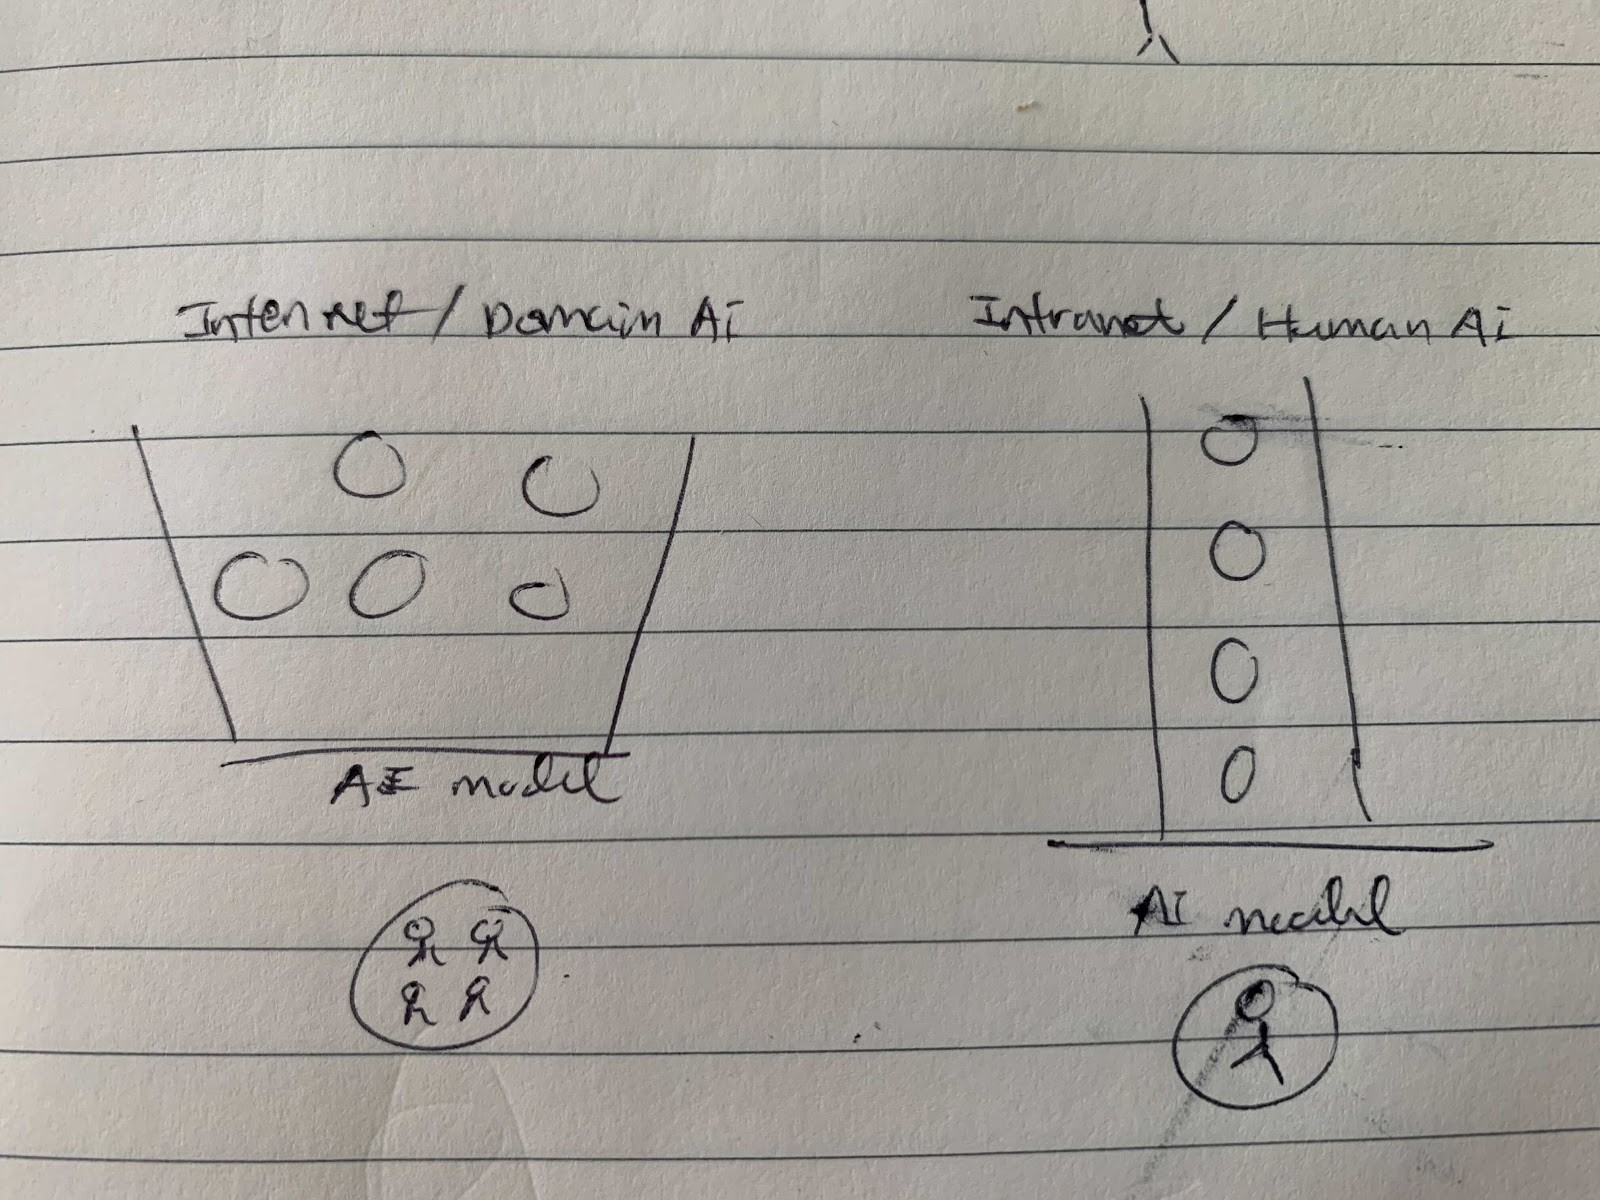 Aggregated data for internet and domain in the world vs Individual data for intranet and human at Luther.